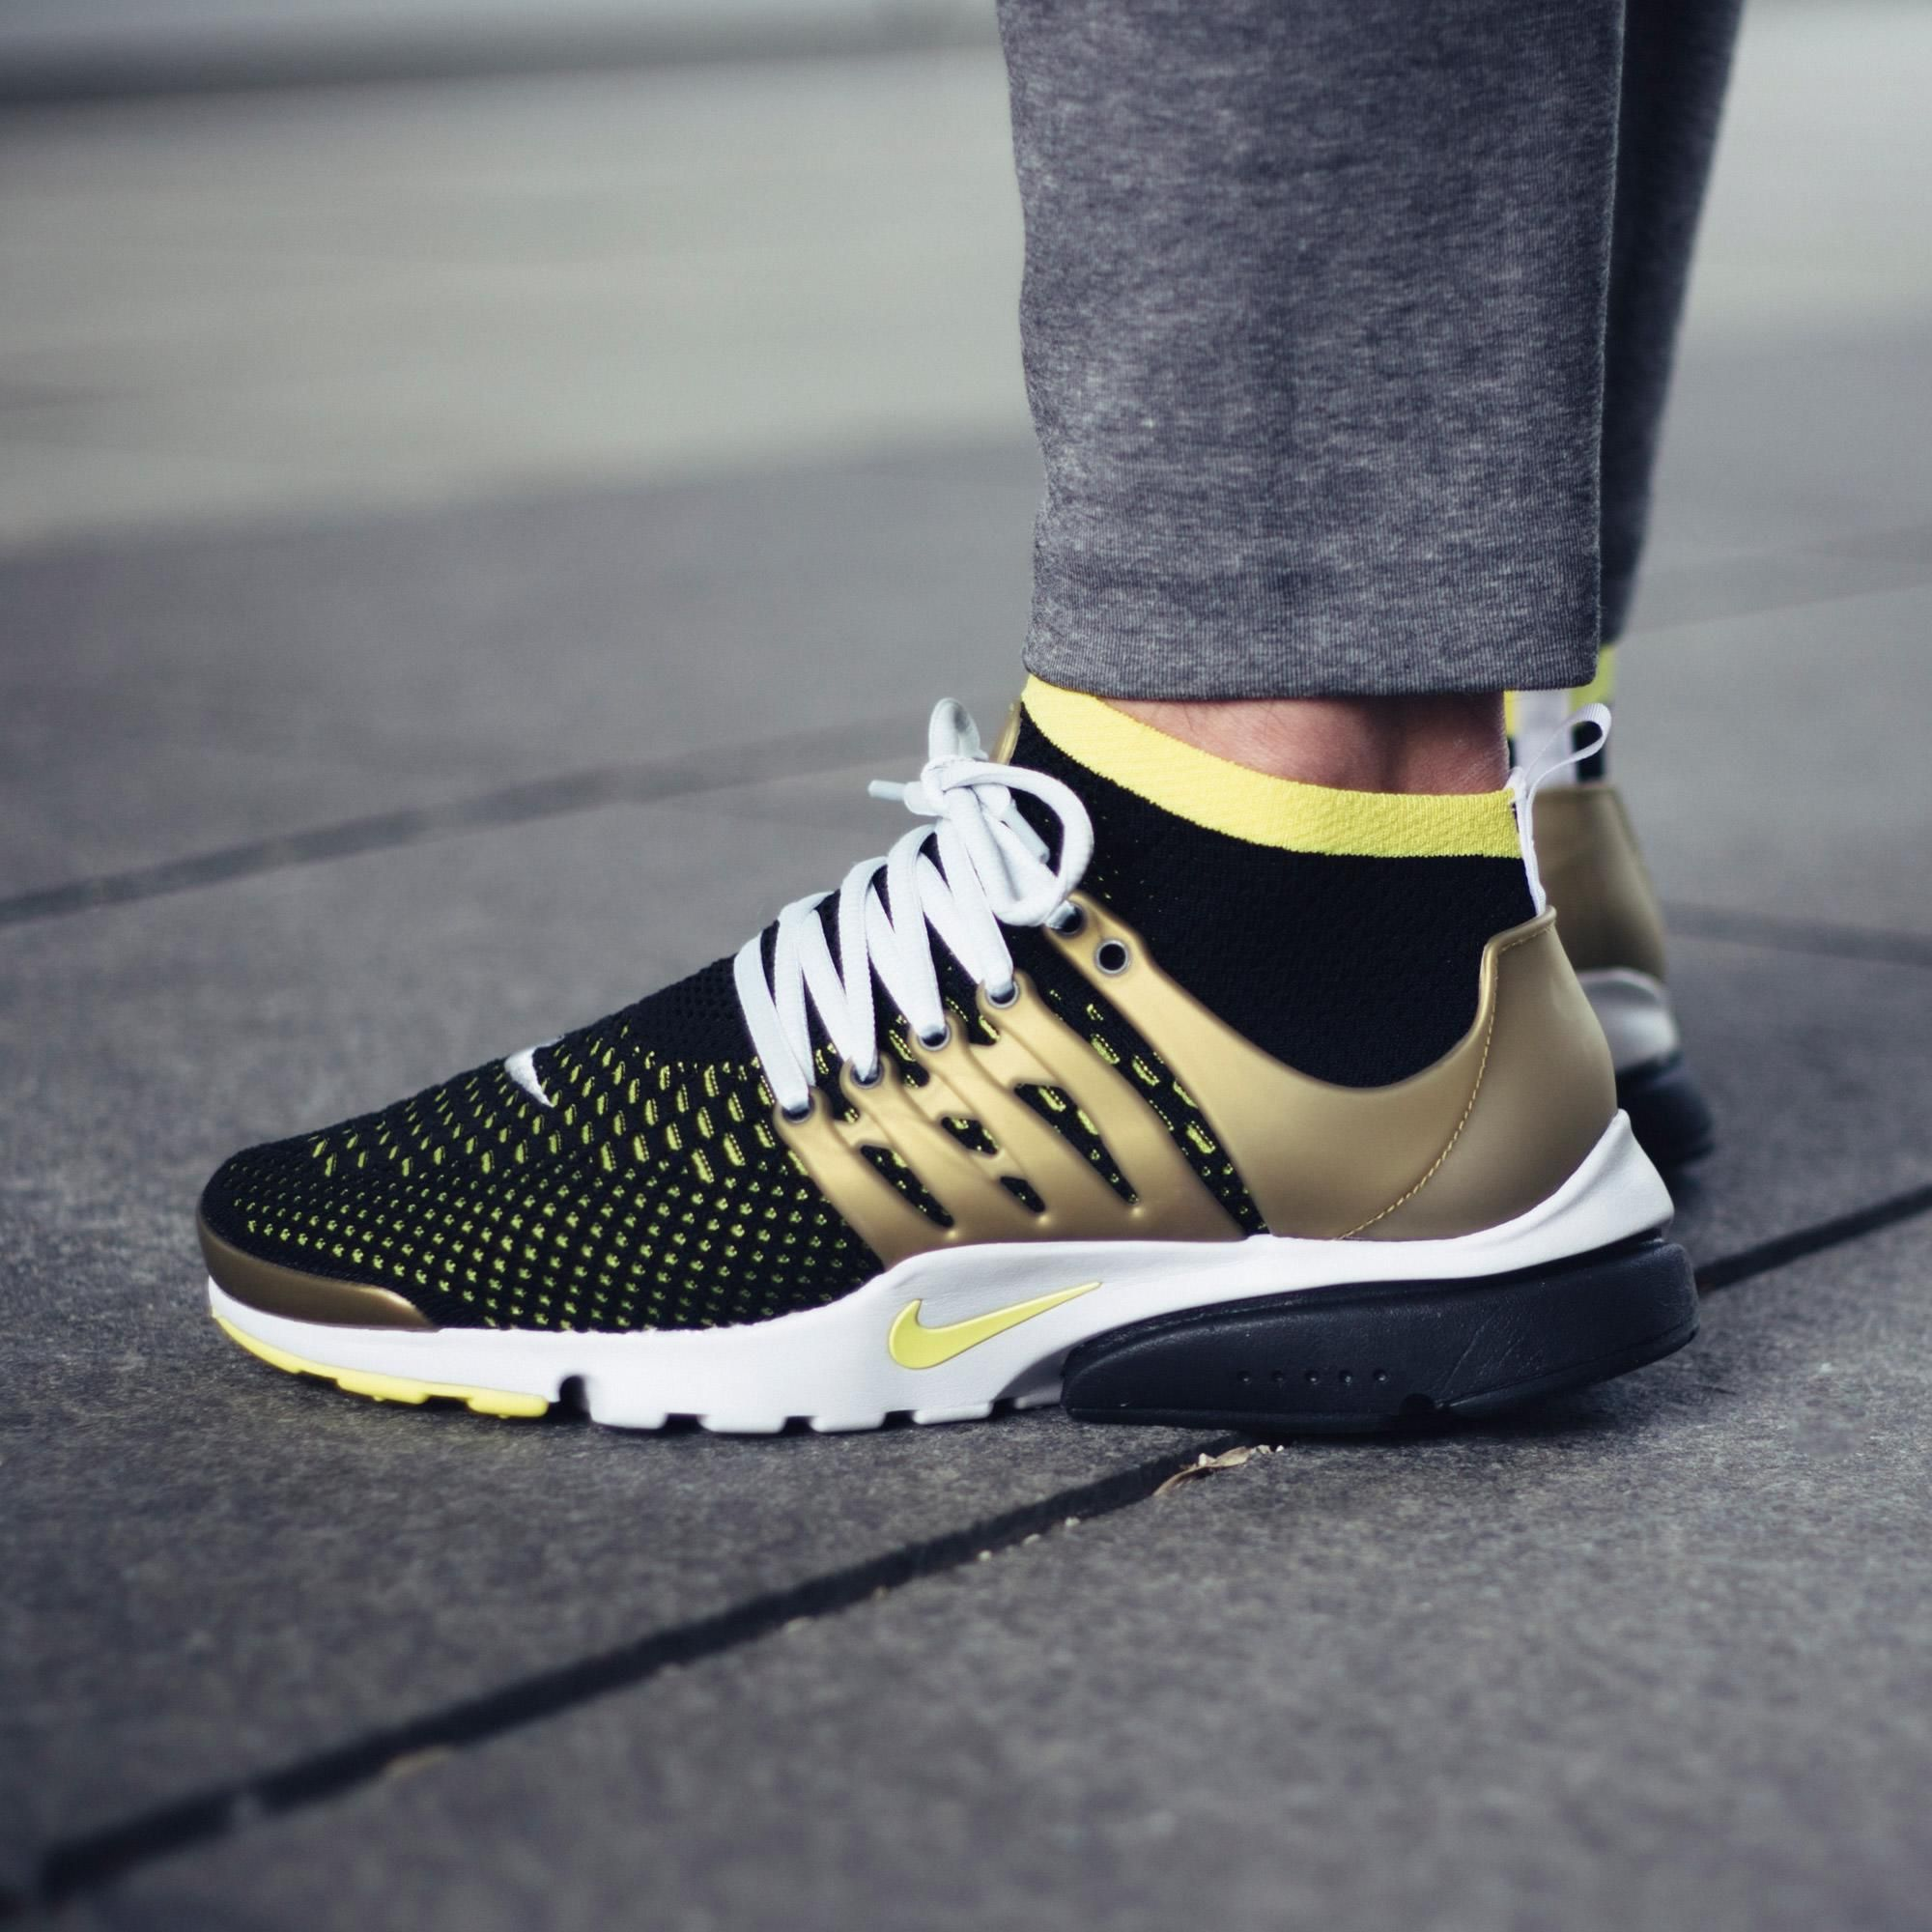 90f371bebb74 Another Look At The Nike Air Presto Flyknit Ultra Black   Yellow   Gold